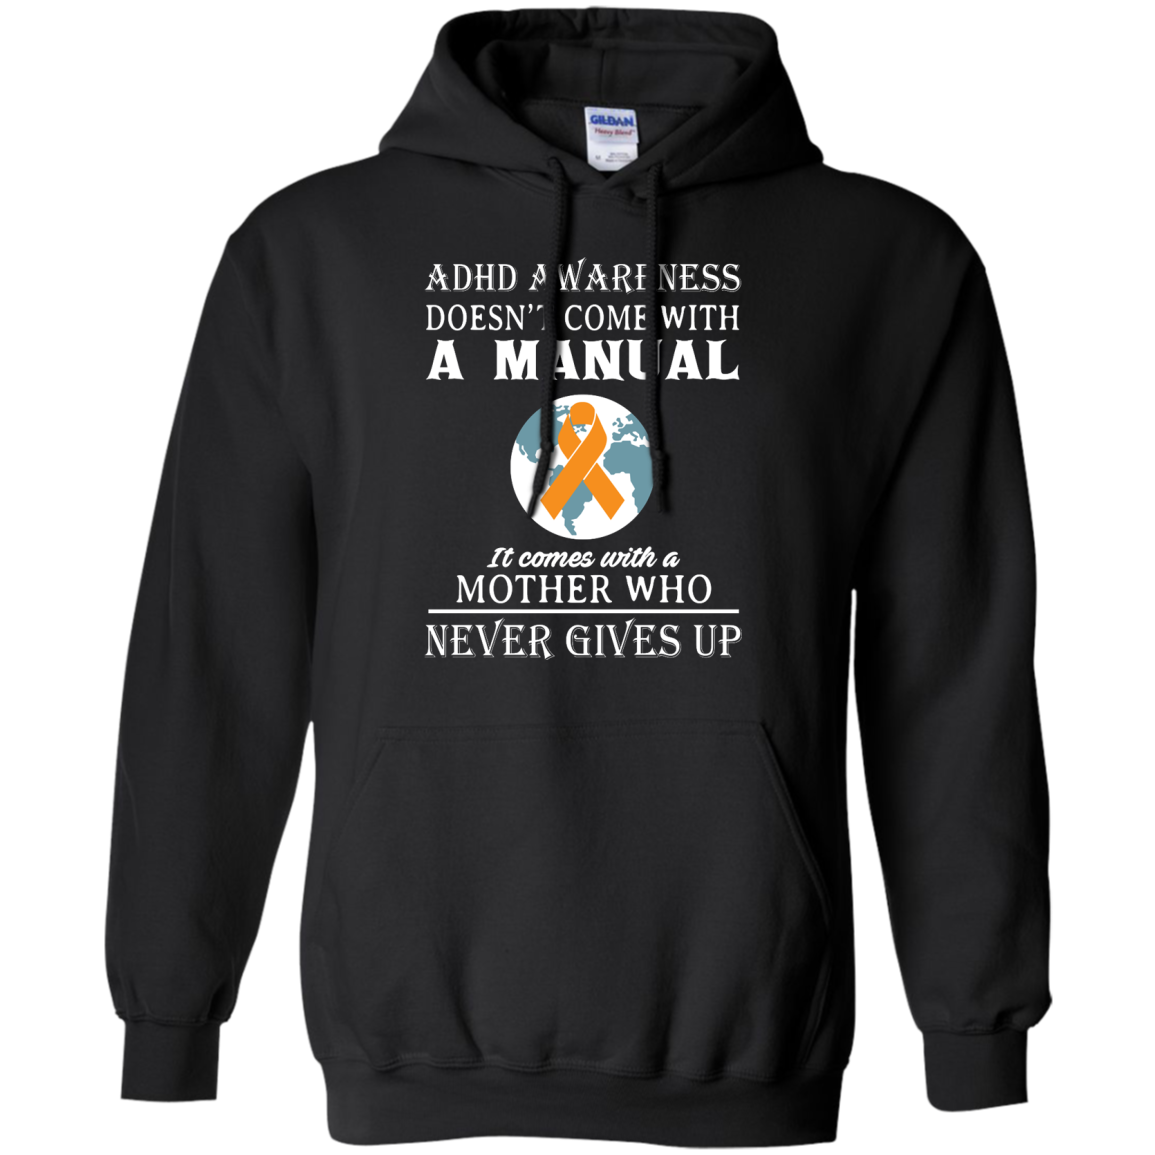 image 273px Adhd Awareness Shirt: It Come With a Mother Who Never Gives Up T Shirts